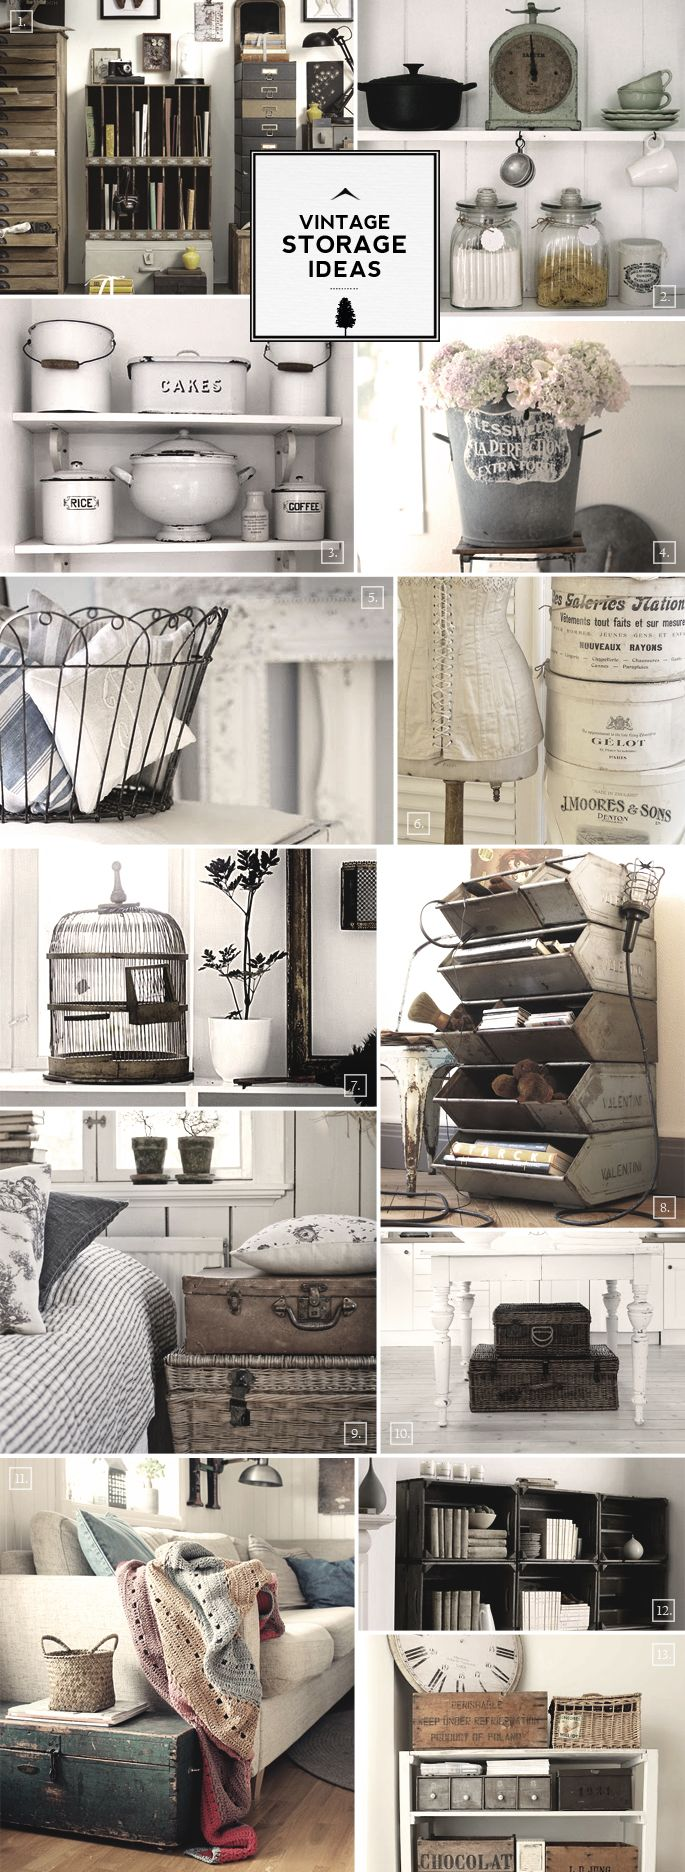 """When it comes to storage ideas with a vintage style, some things to look for are pieces made out of metal (galvanized or with a porcelain enamel), wicker, or glass. Storing anything in glass jars really recreates that vintage look and feel as seen in picture (2) – this is because we all use inexpensive […]"""